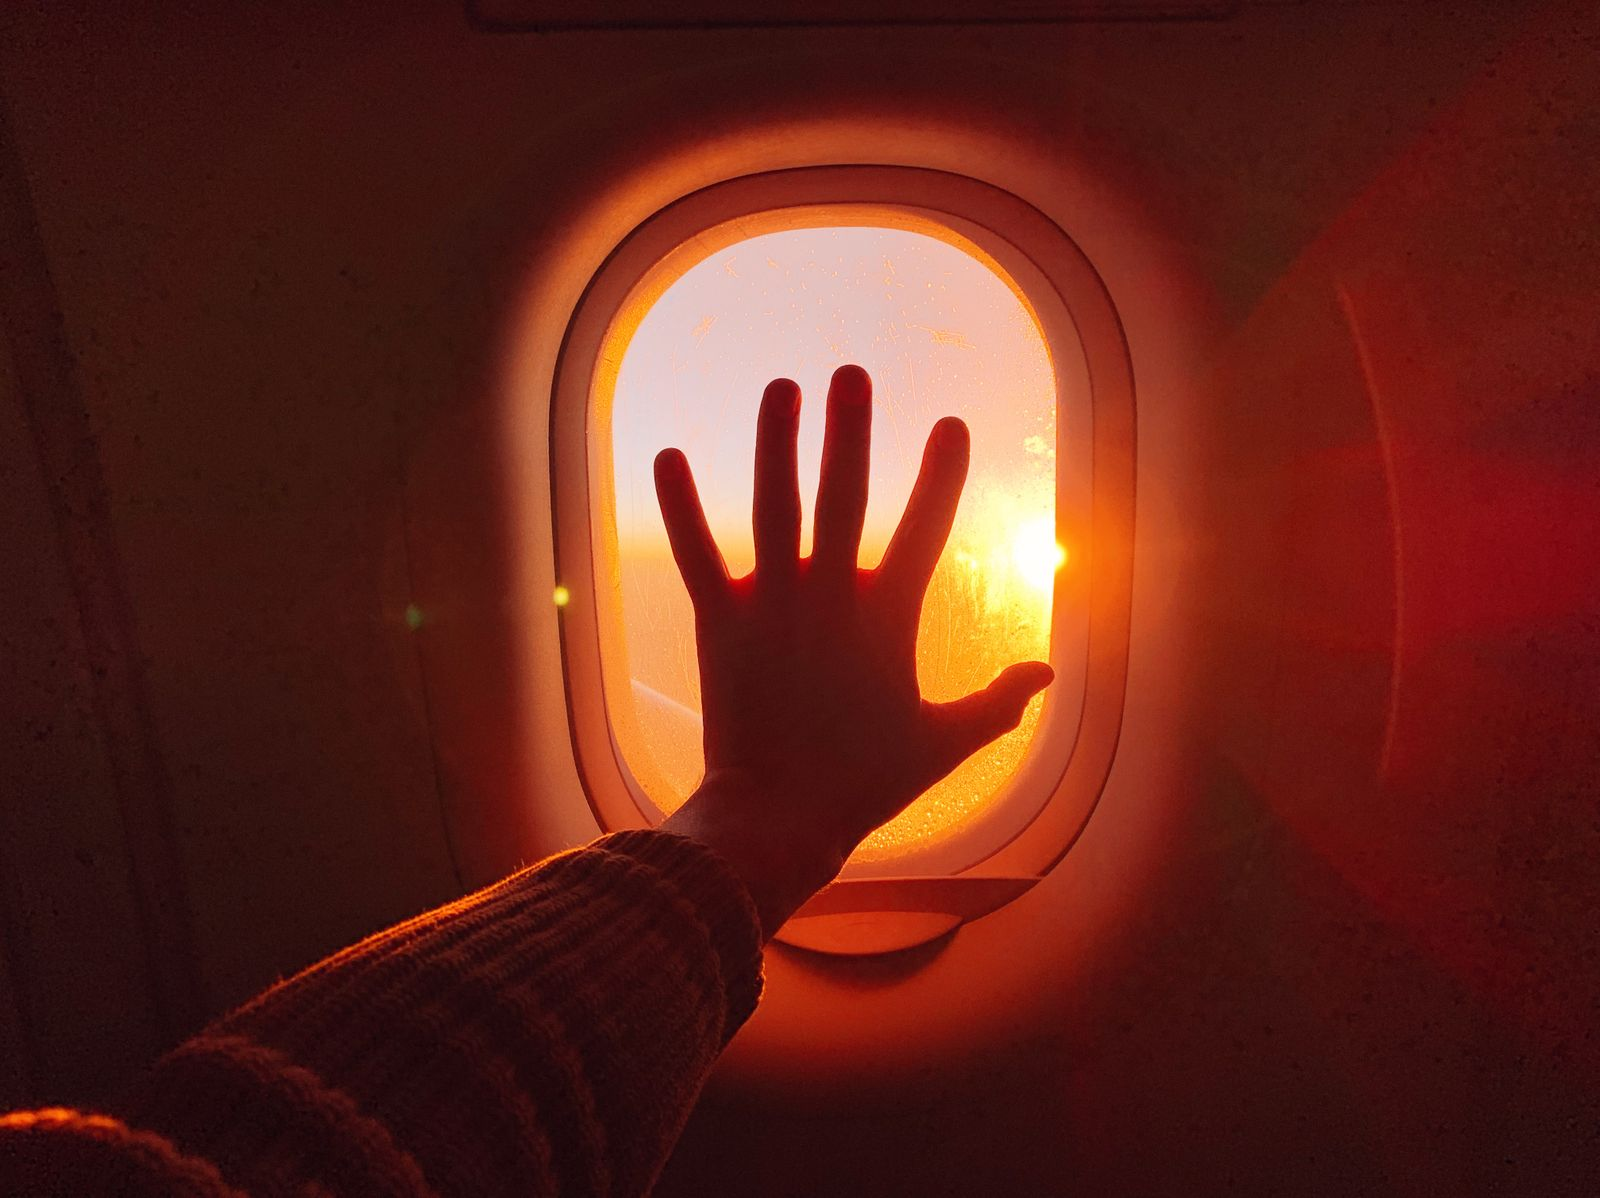 Touching plane window while flying in the sky during sunset